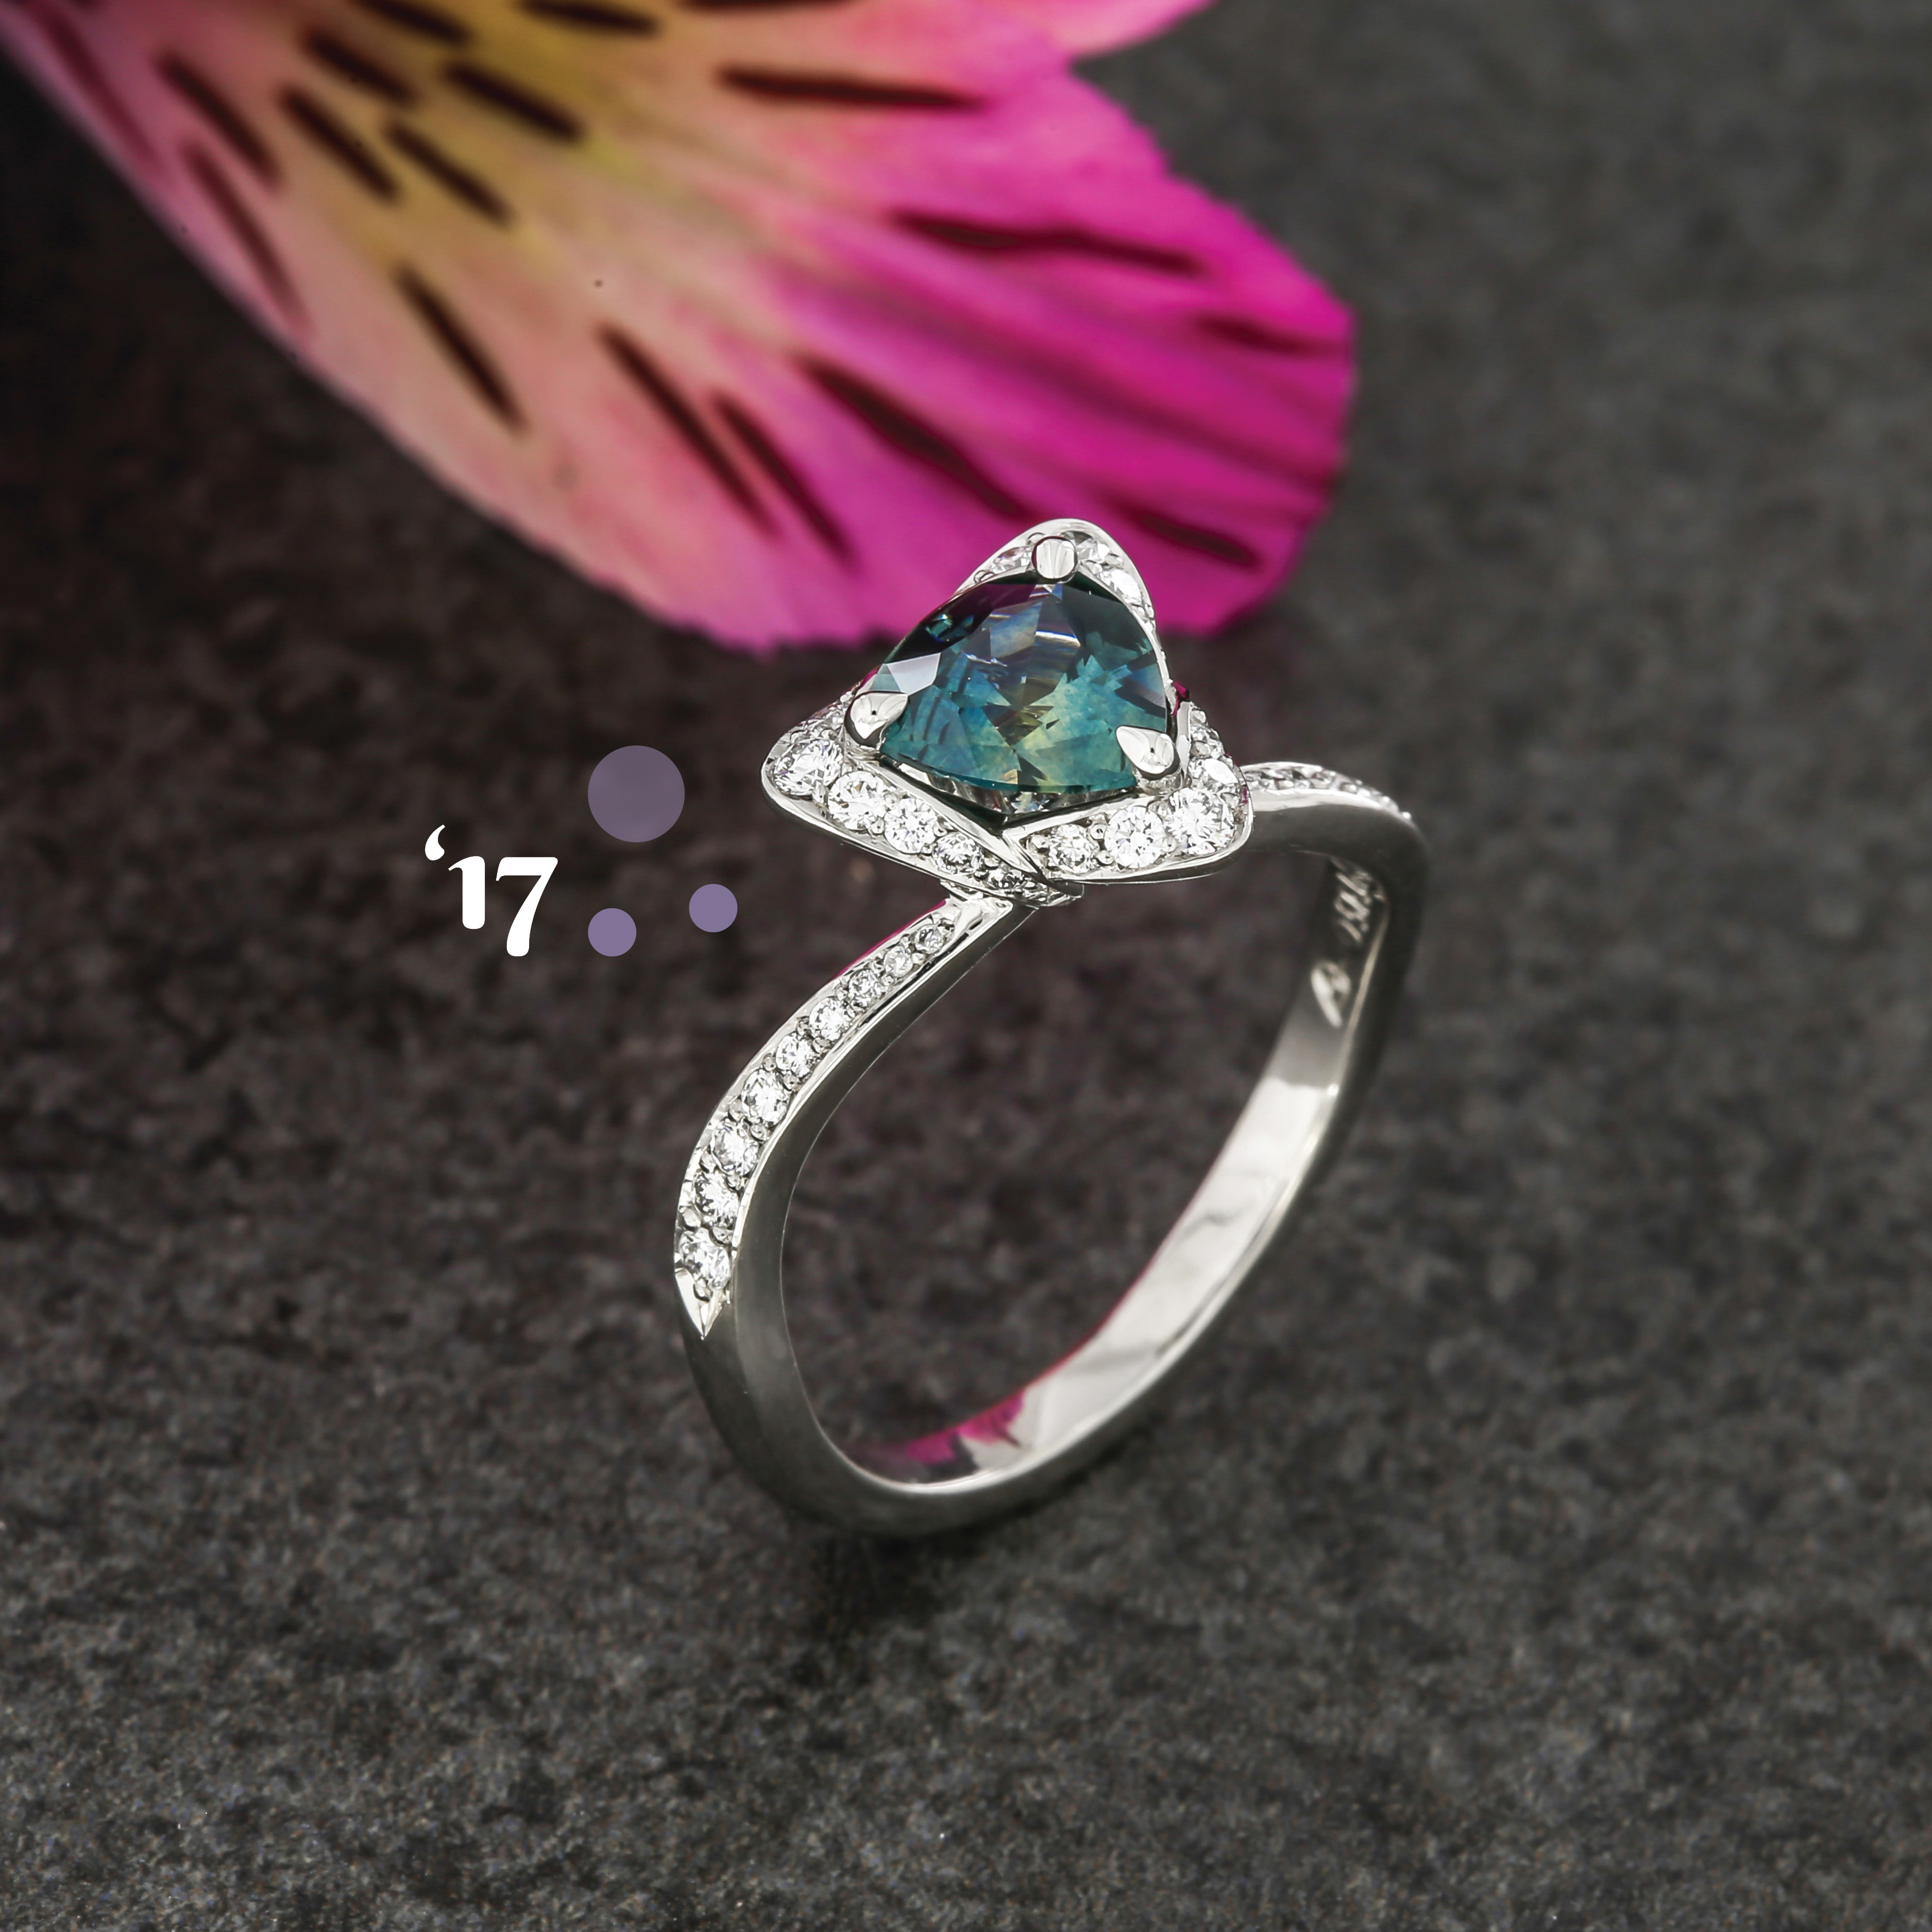 promise unique unusual rings diamond beautiful and colorful non engagement wedding